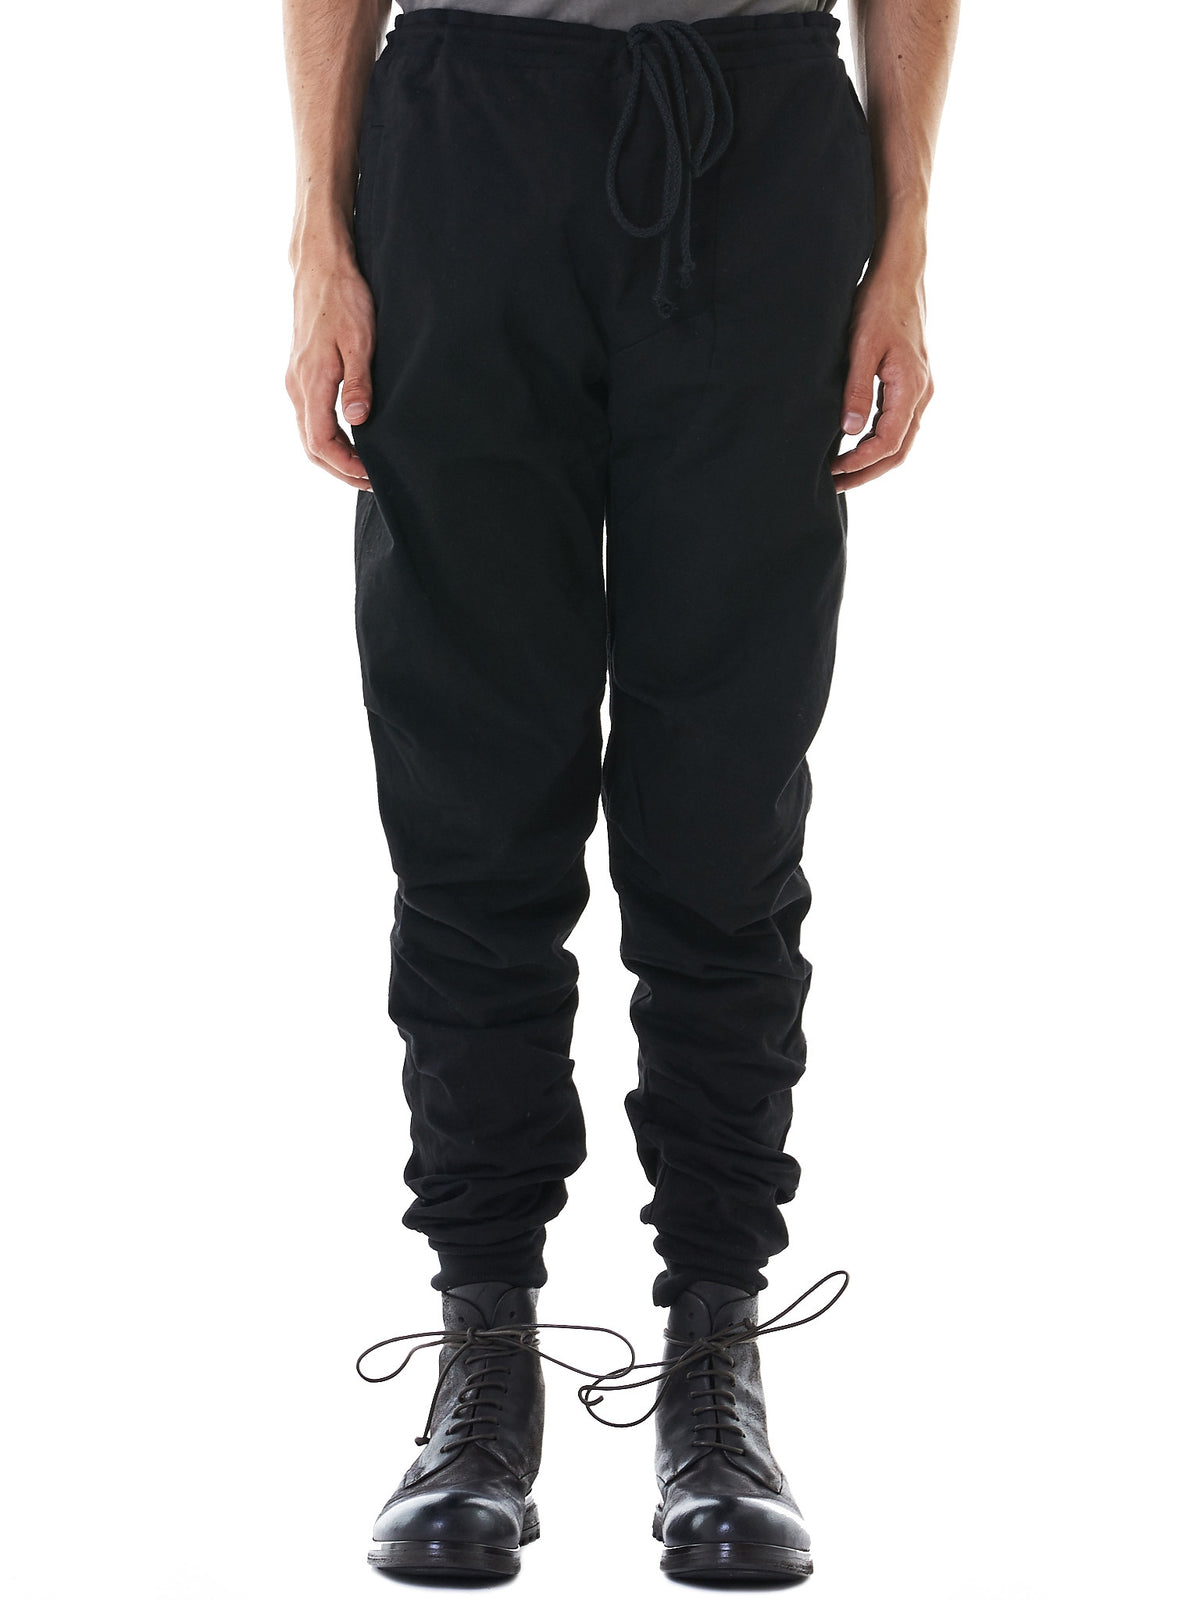 Pleated Track Pants (M21-552-621R-BLACK)